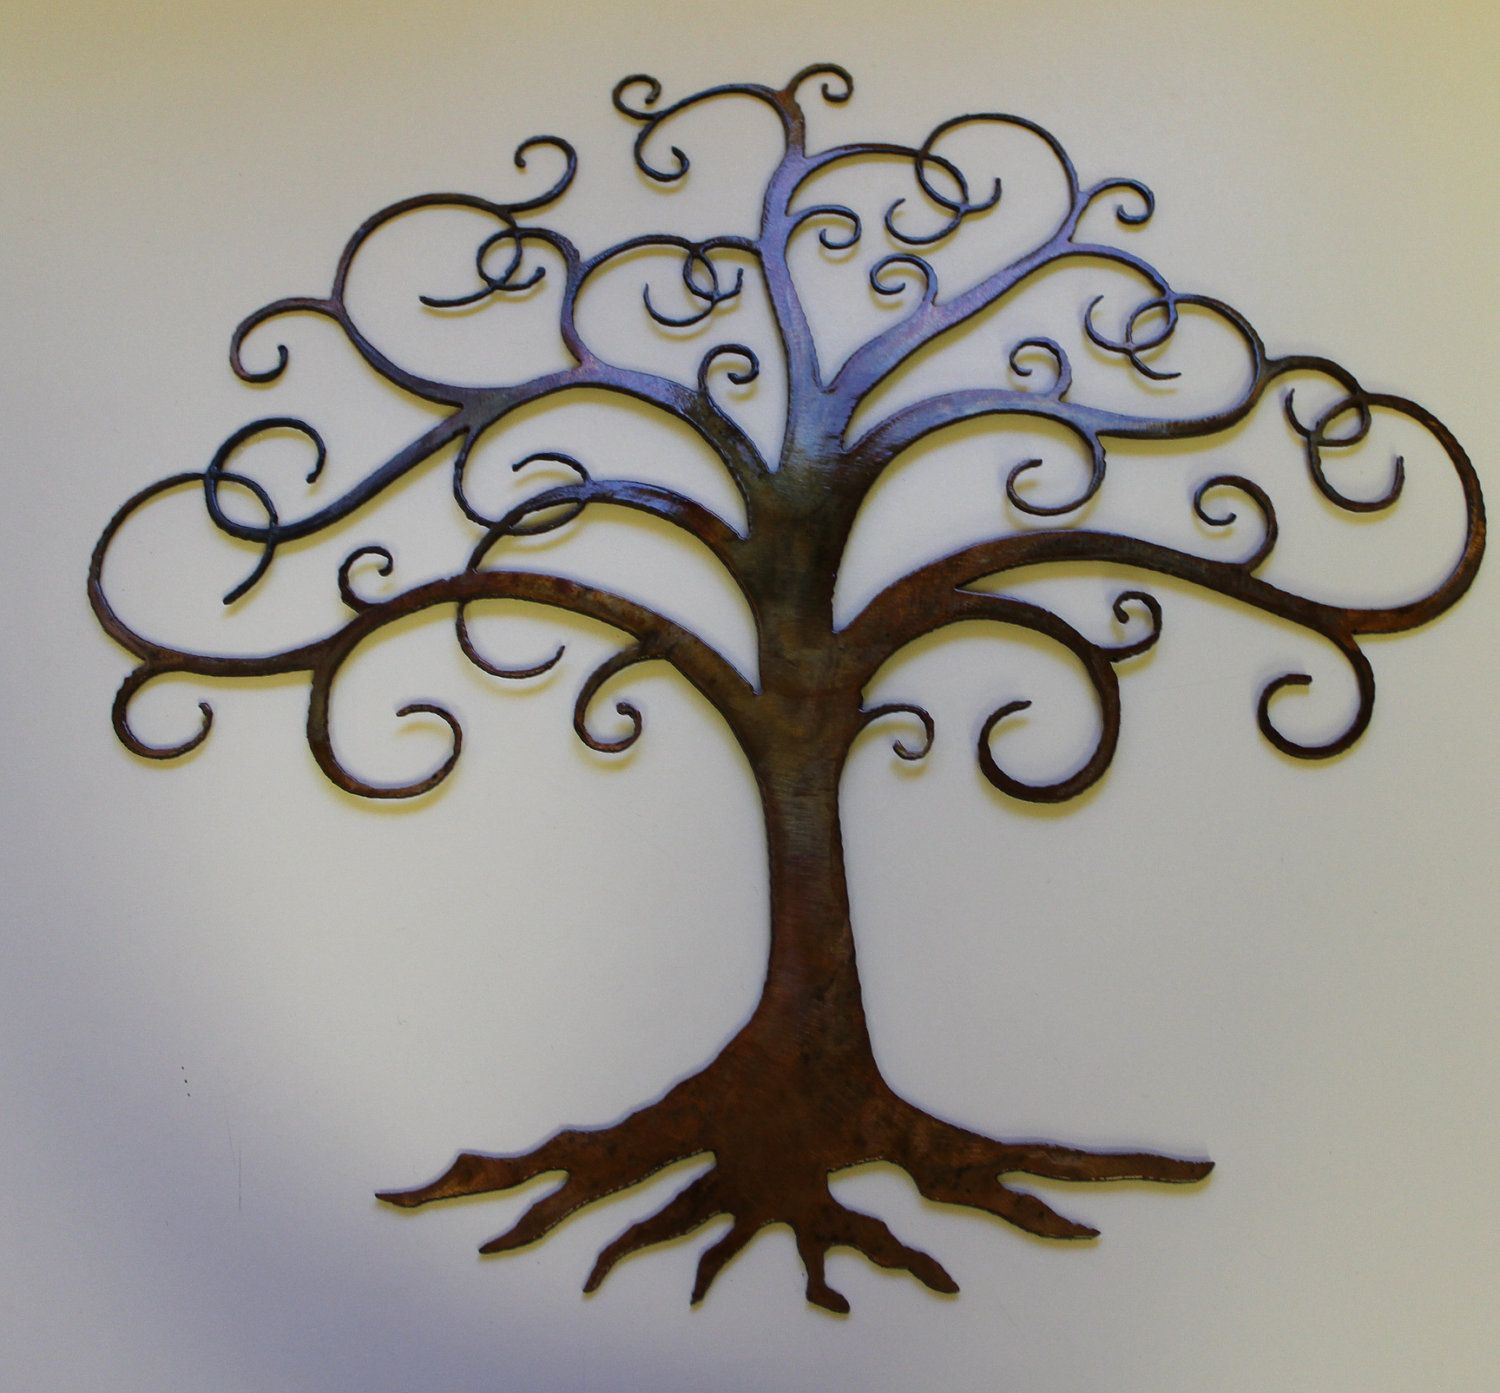 Metal Wall Hangings tree of life | swirled tree of life metal wall art decor